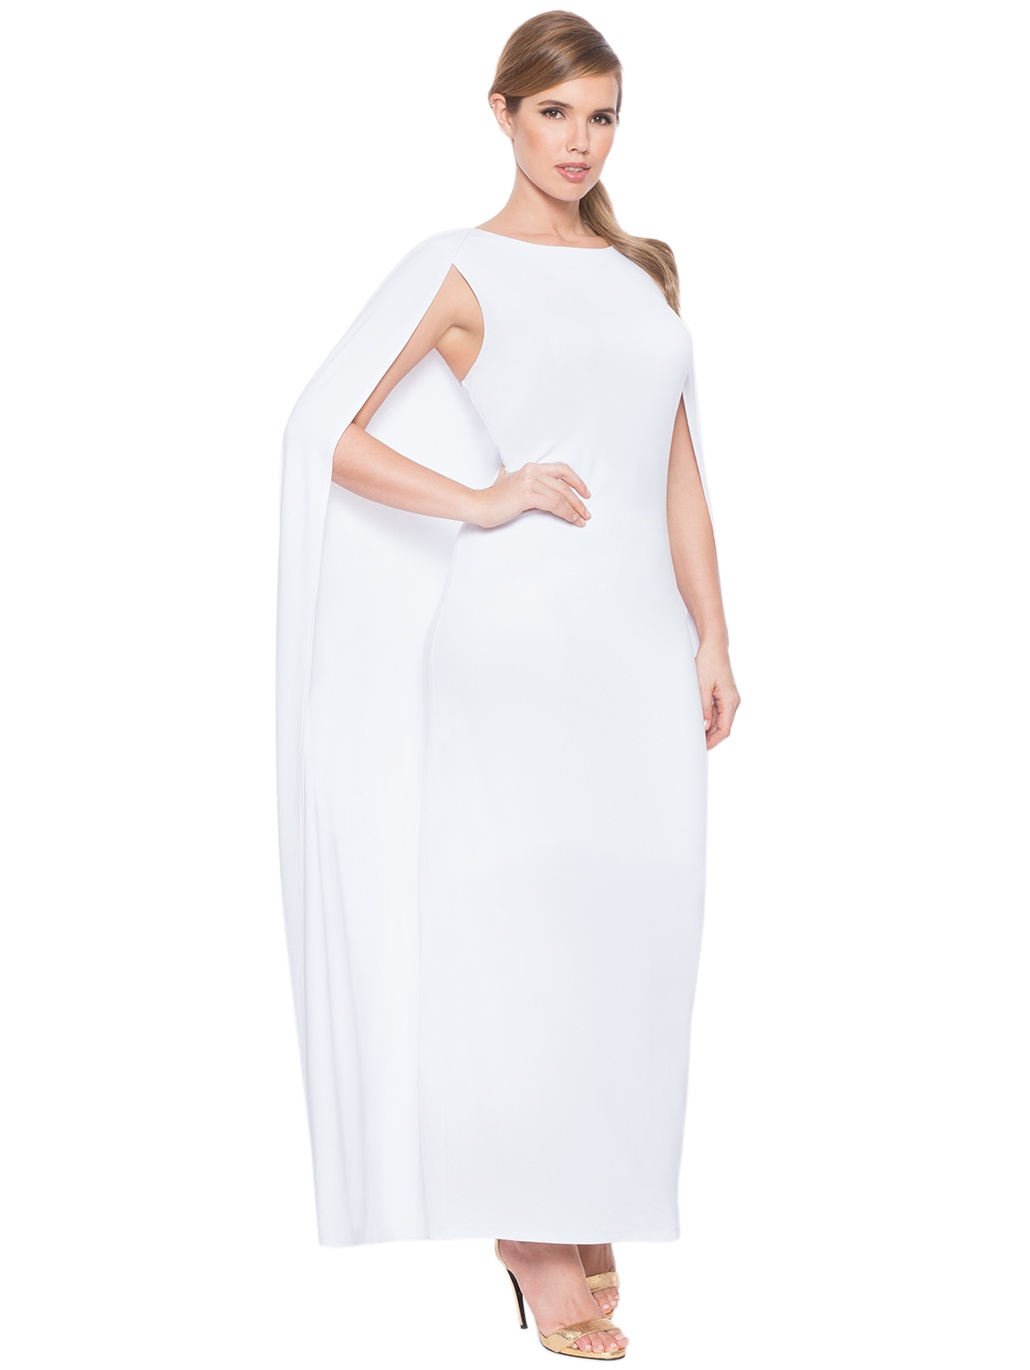 Affordable Plus Size Bridal Gowns- Studio Jersey Capelet Gown